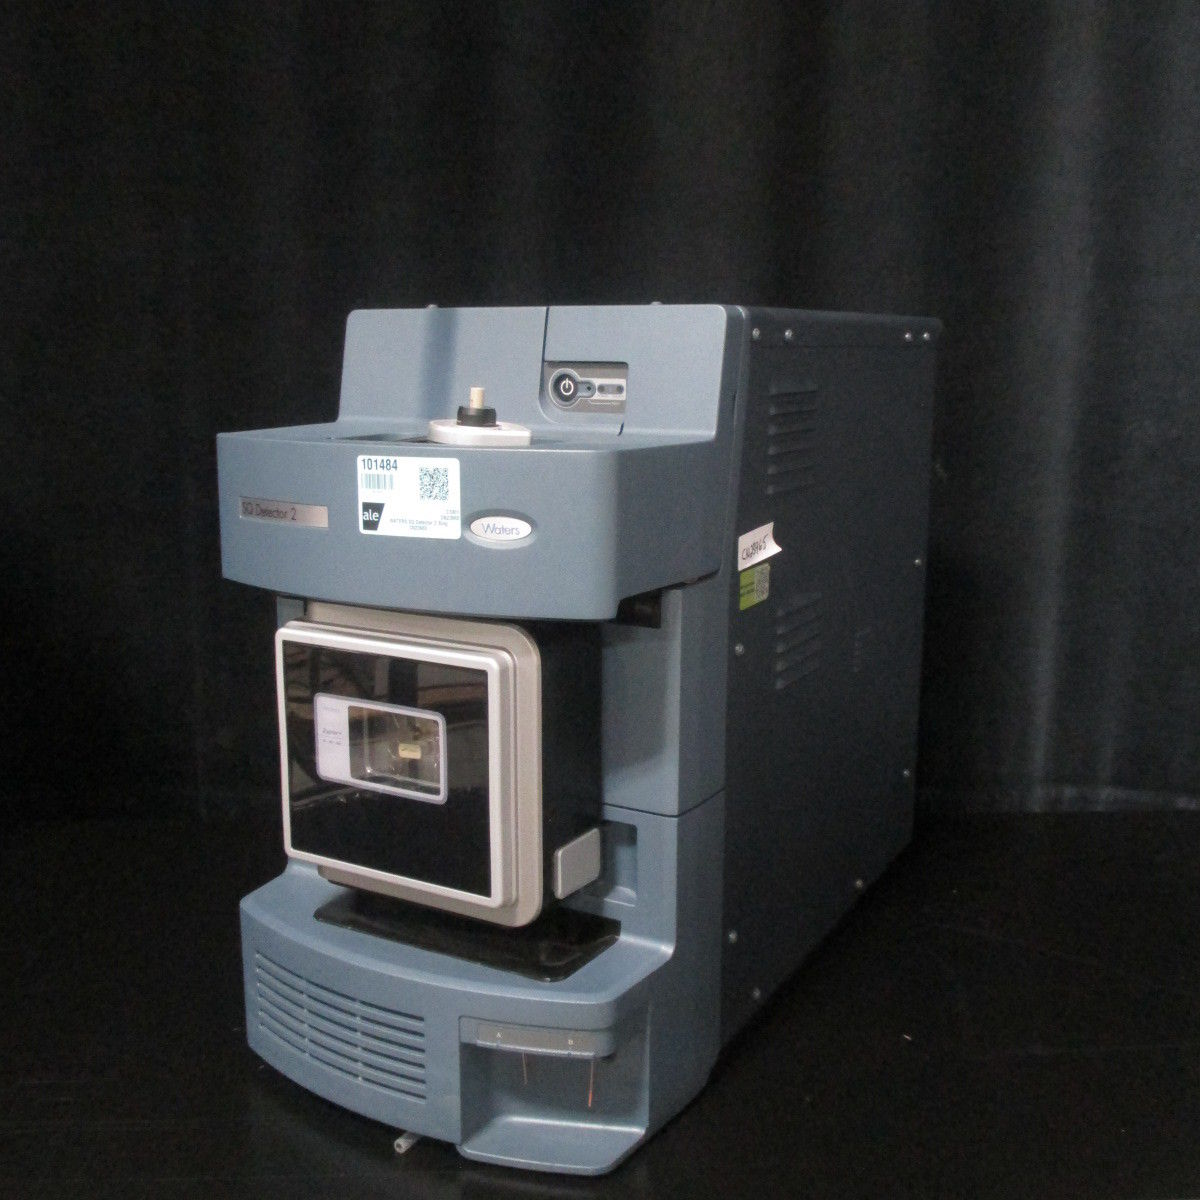 Analytical Laboratory Equipment - 12 Units -Waters Detector, Waters SQD2, Protein Simple Sally, Asyst Robot, Bio Rad Droplet Generator, Thermo TSQ, Waters Xevo